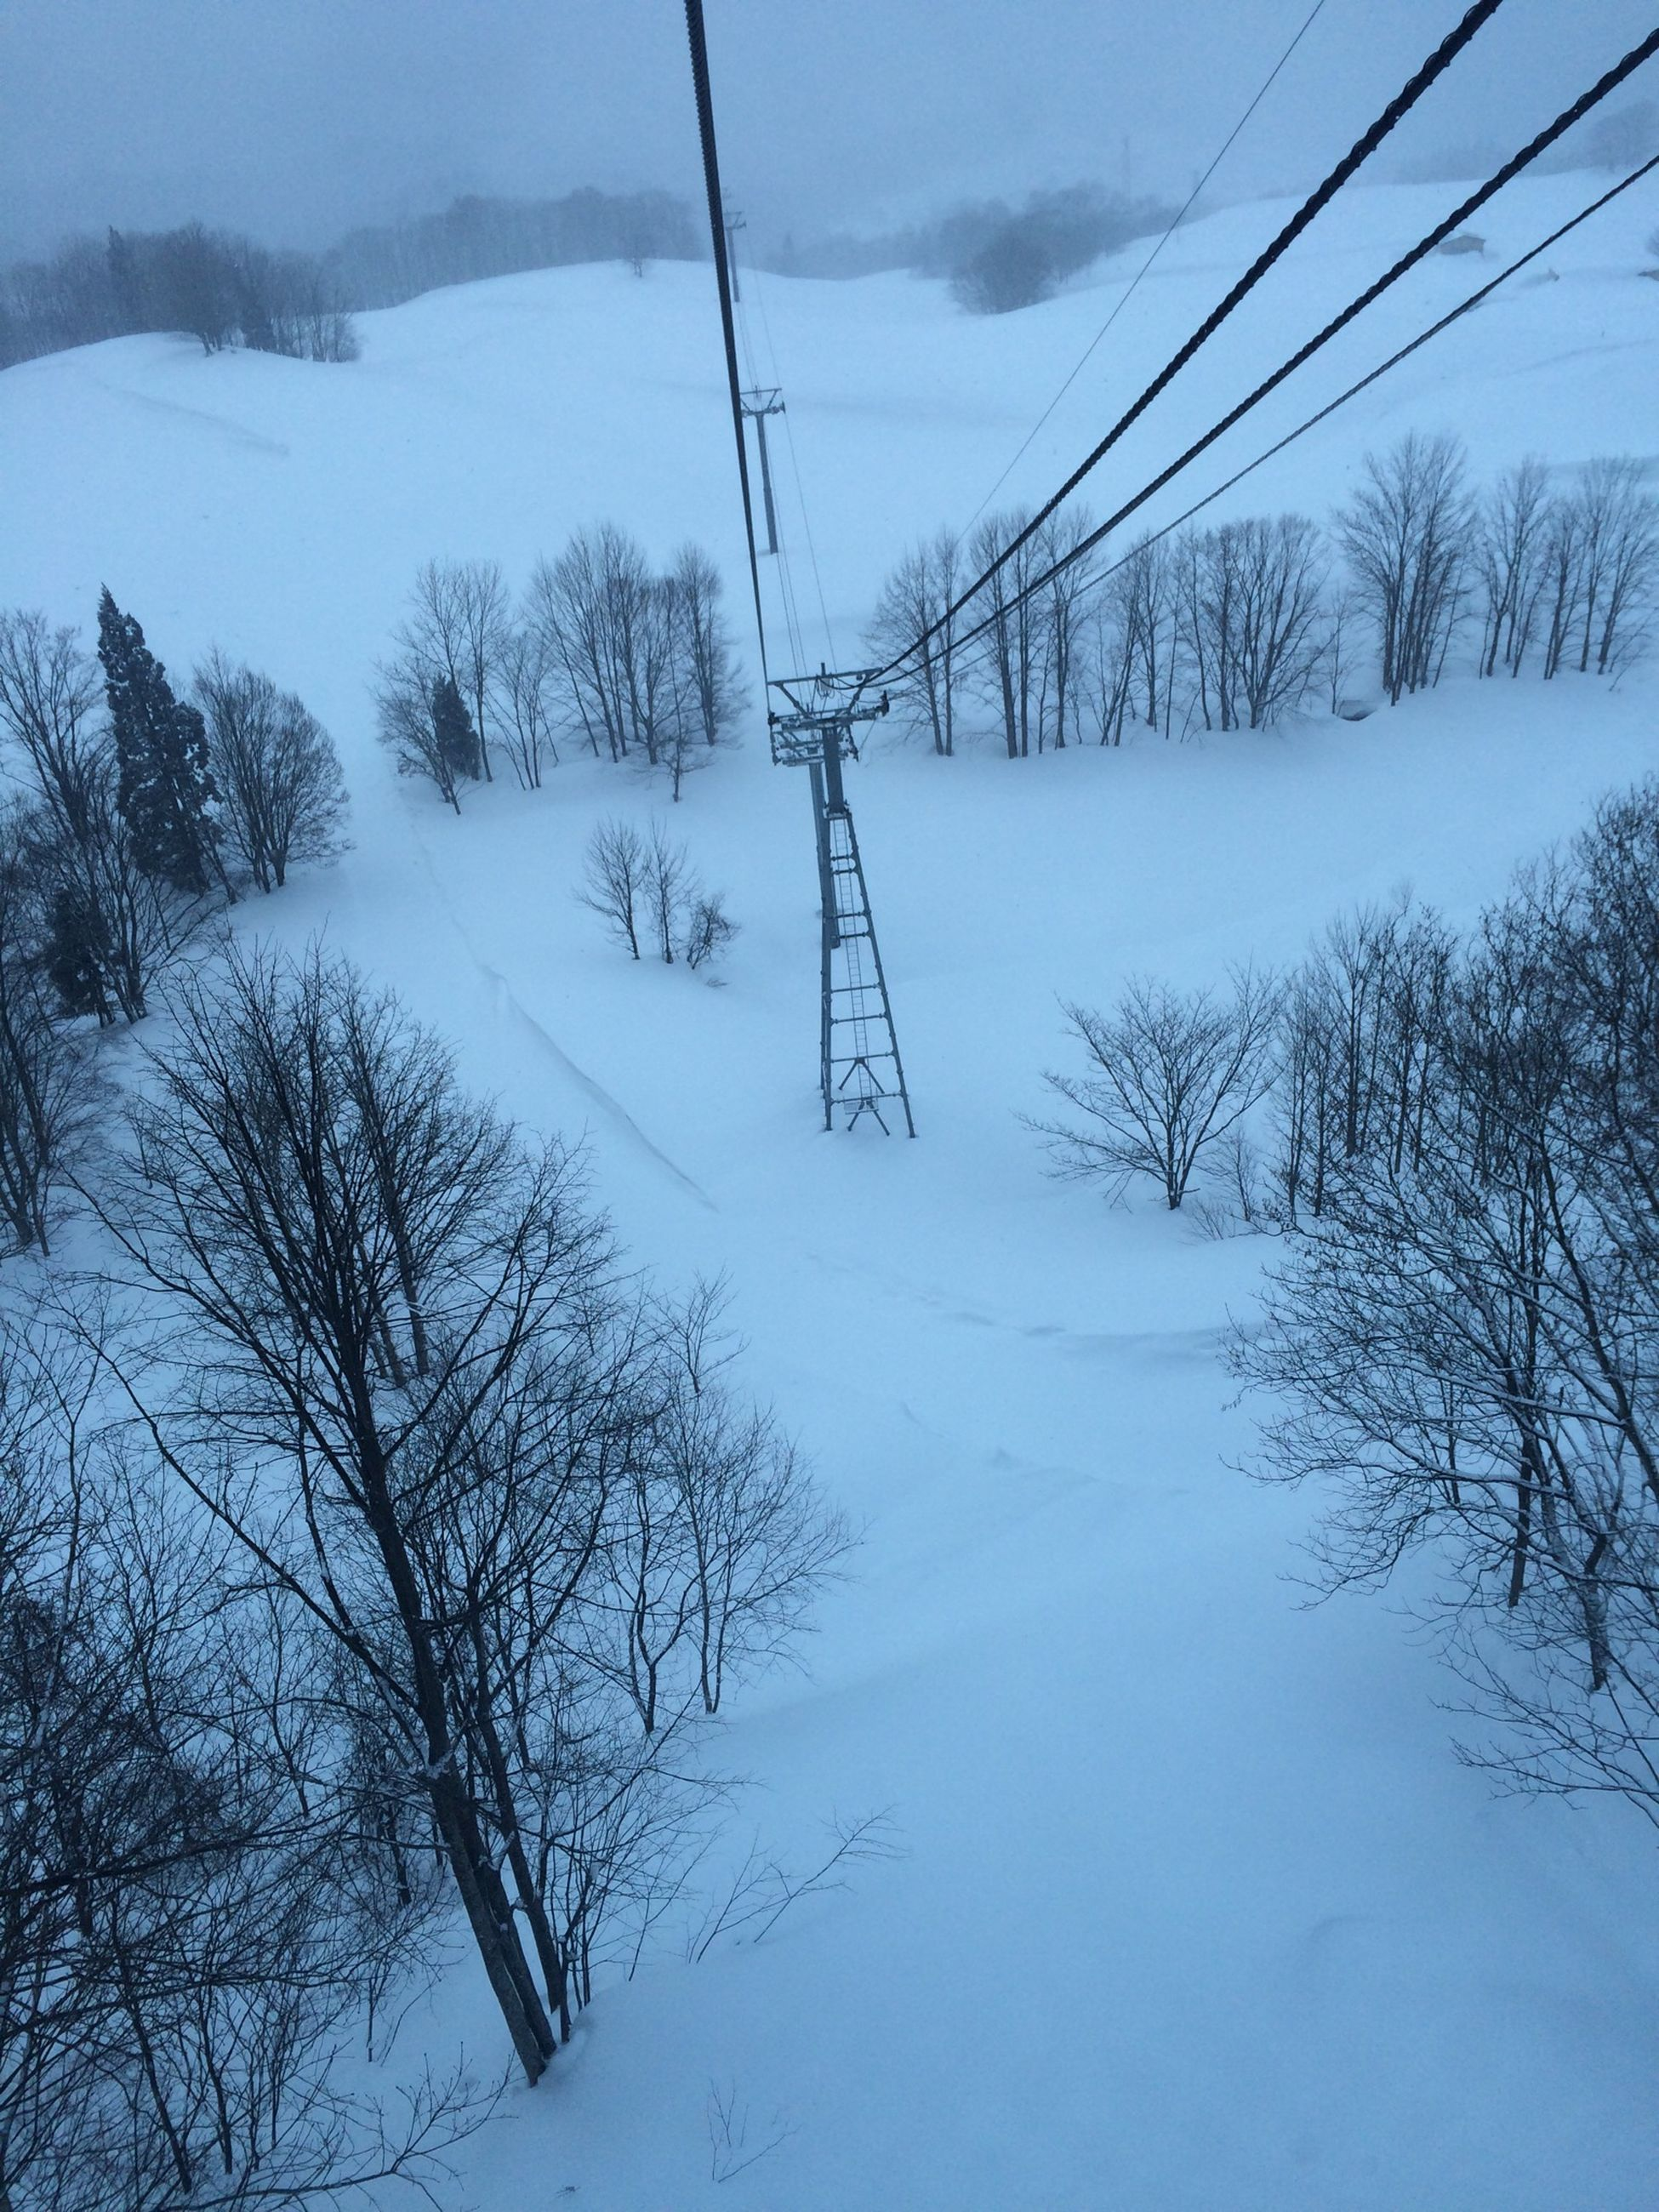 snow, winter, electricity pylon, power line, electricity, cold temperature, power supply, cable, connection, tree, fuel and power generation, weather, sky, season, tranquility, tranquil scene, technology, nature, overhead cable car, bare tree